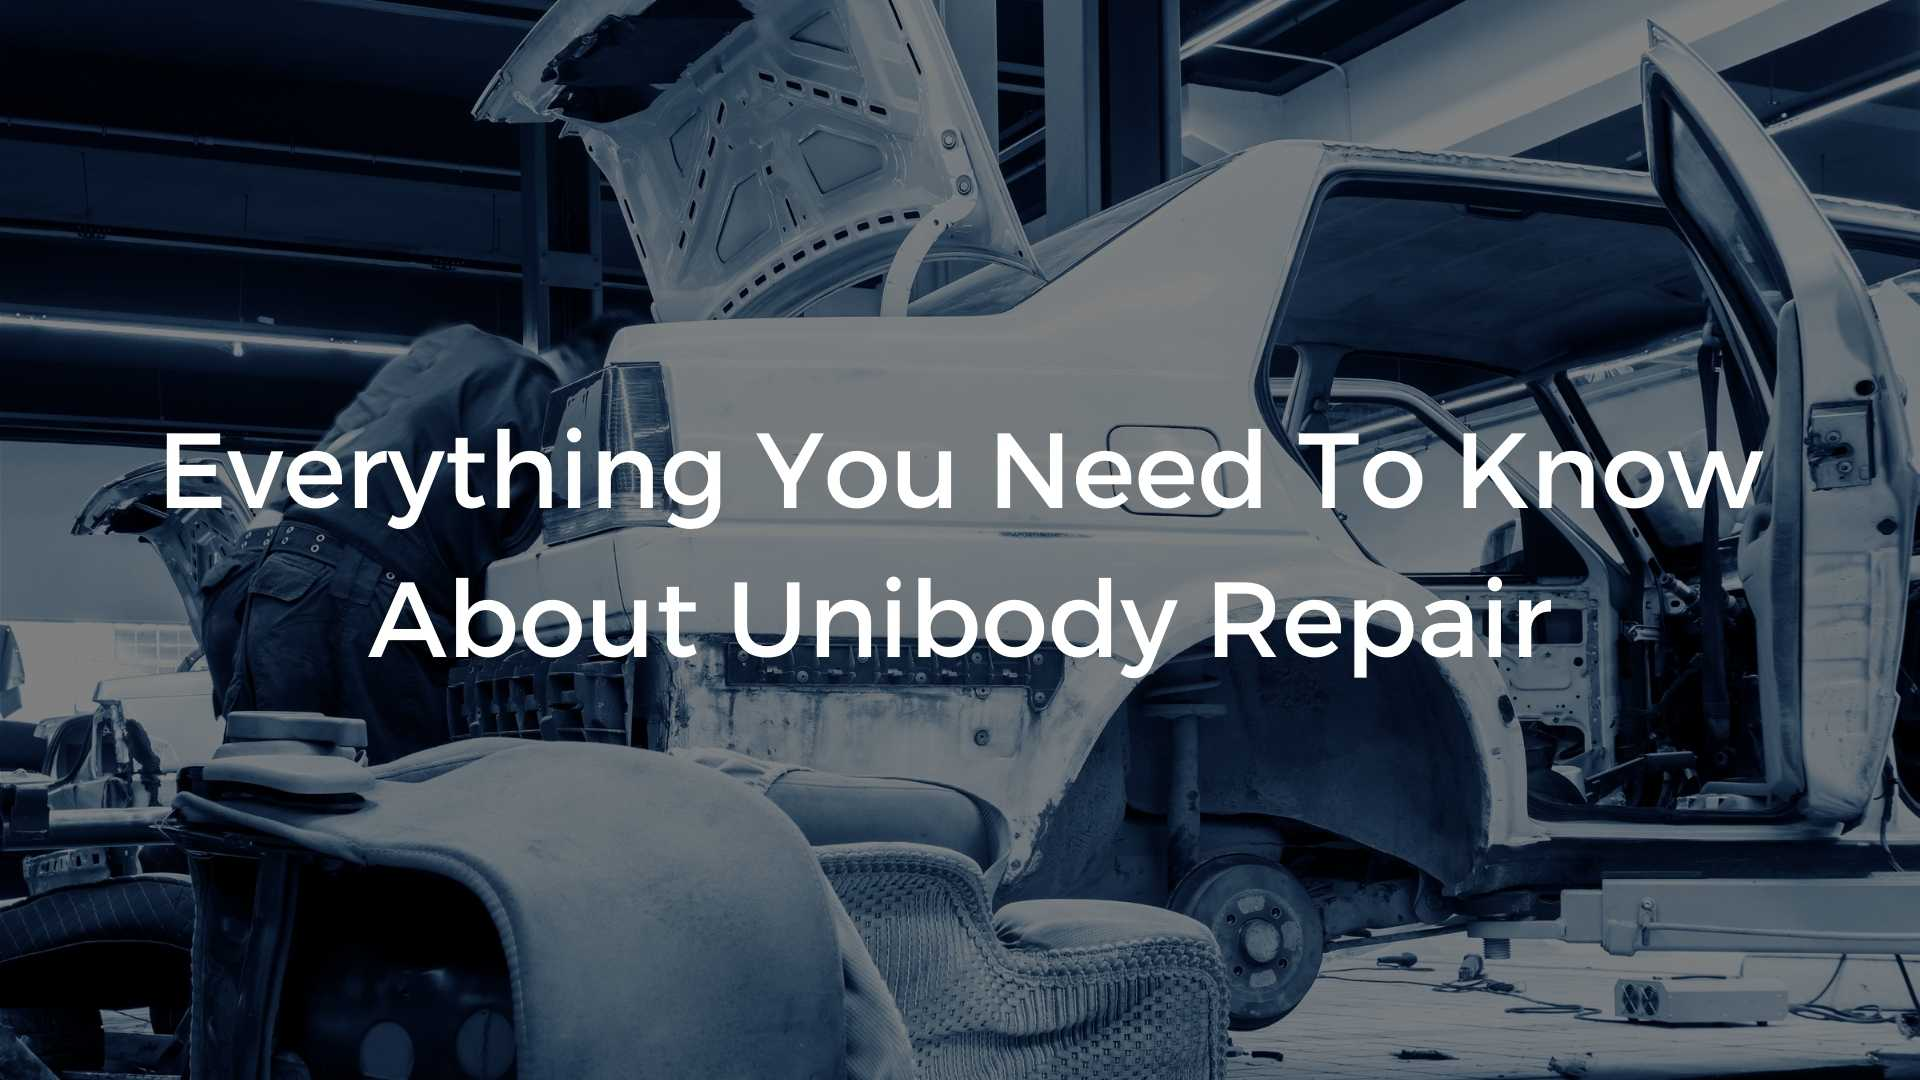 Everything You Need To Know About Unibody Repair